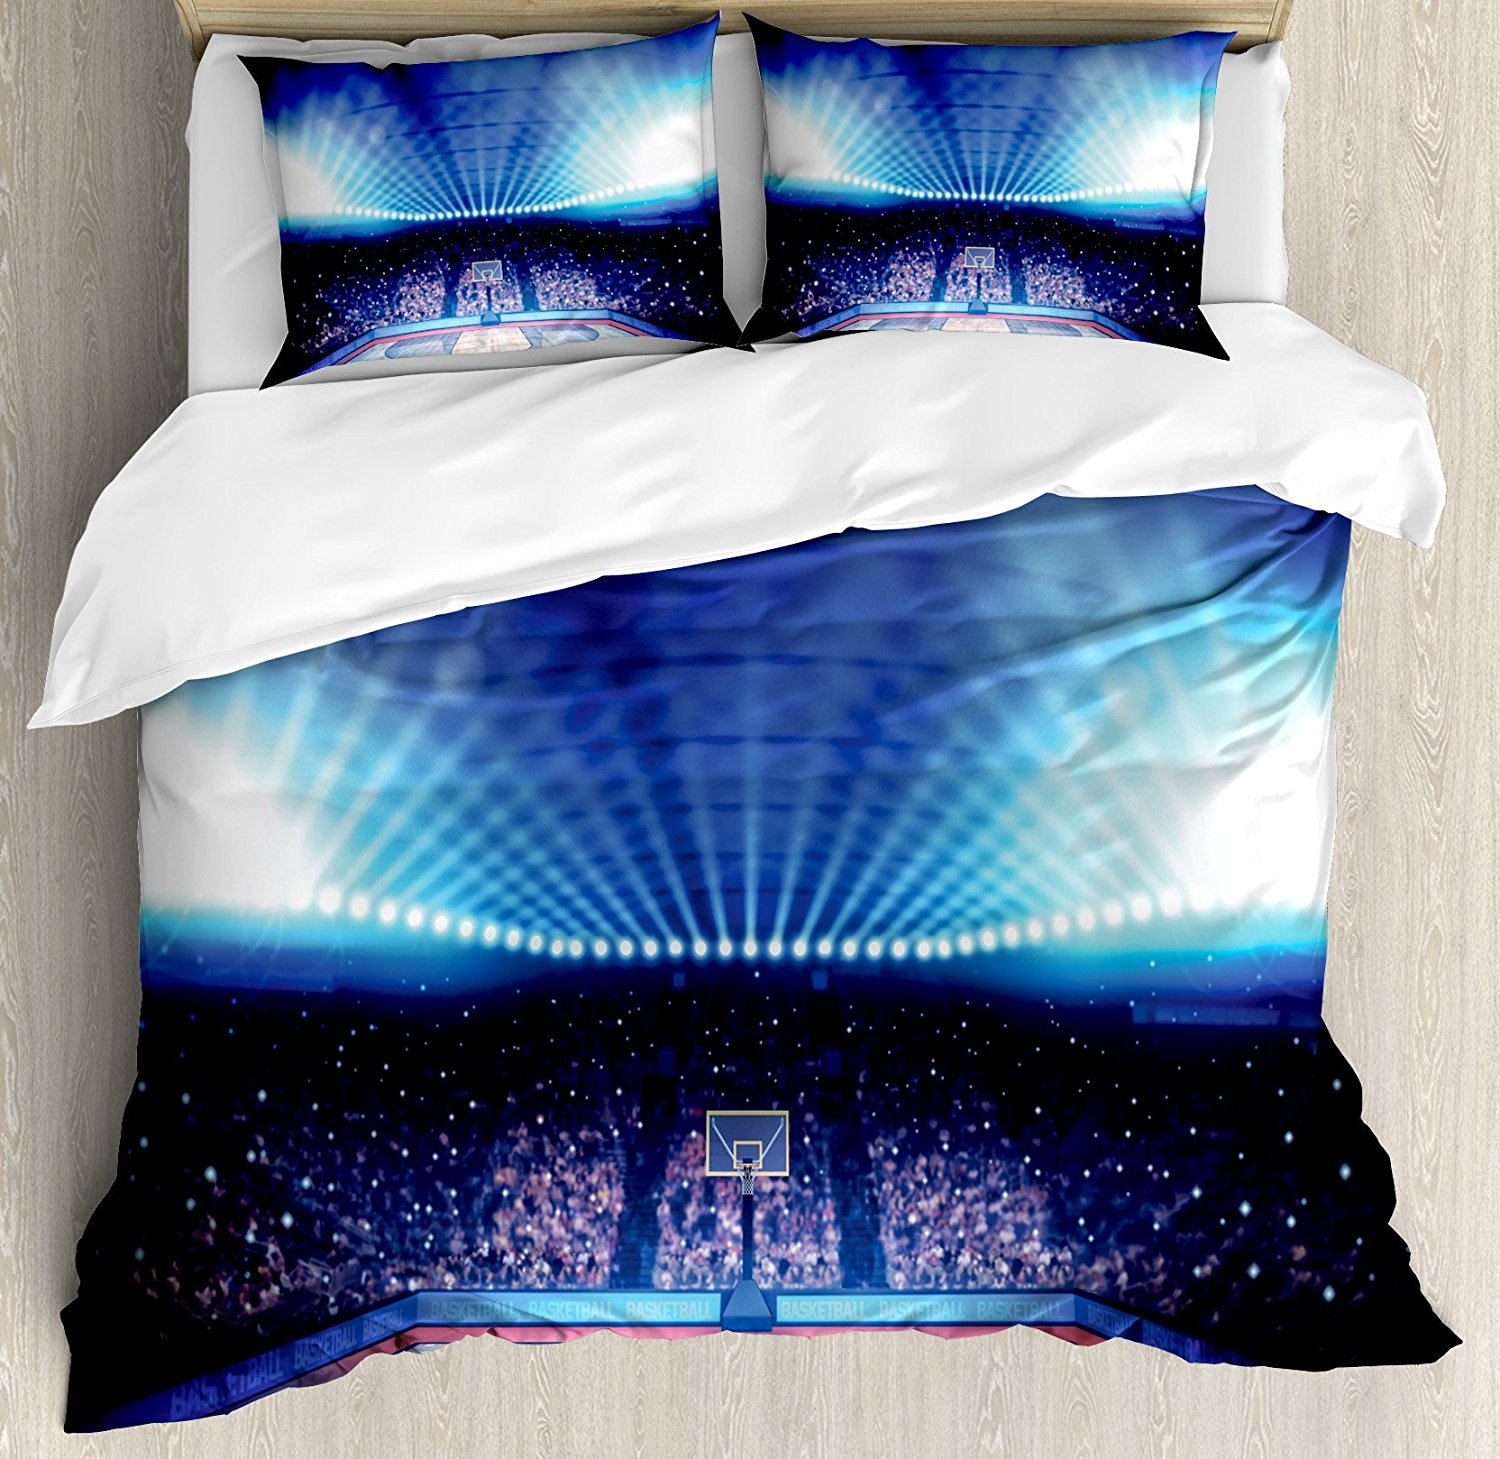 Sports Duvet Cover Set Basketball Arena Court with Fans And Flashlights Competition Them ...